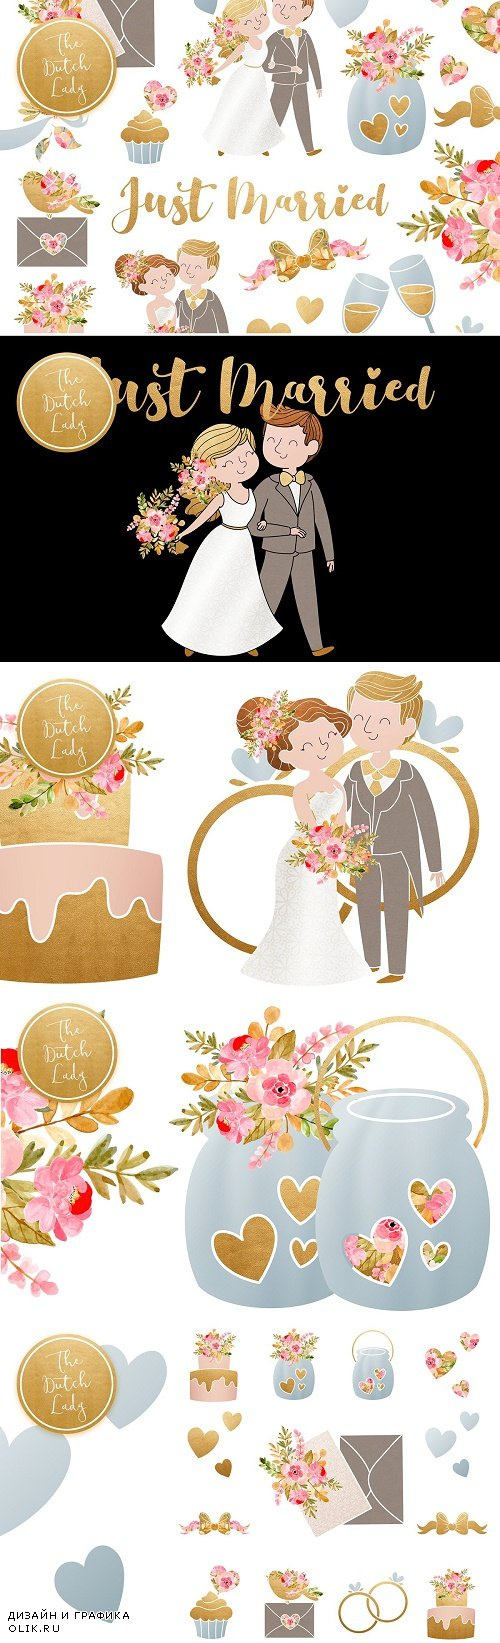 Wedding Day & Marriage Clipart Set - 3910270